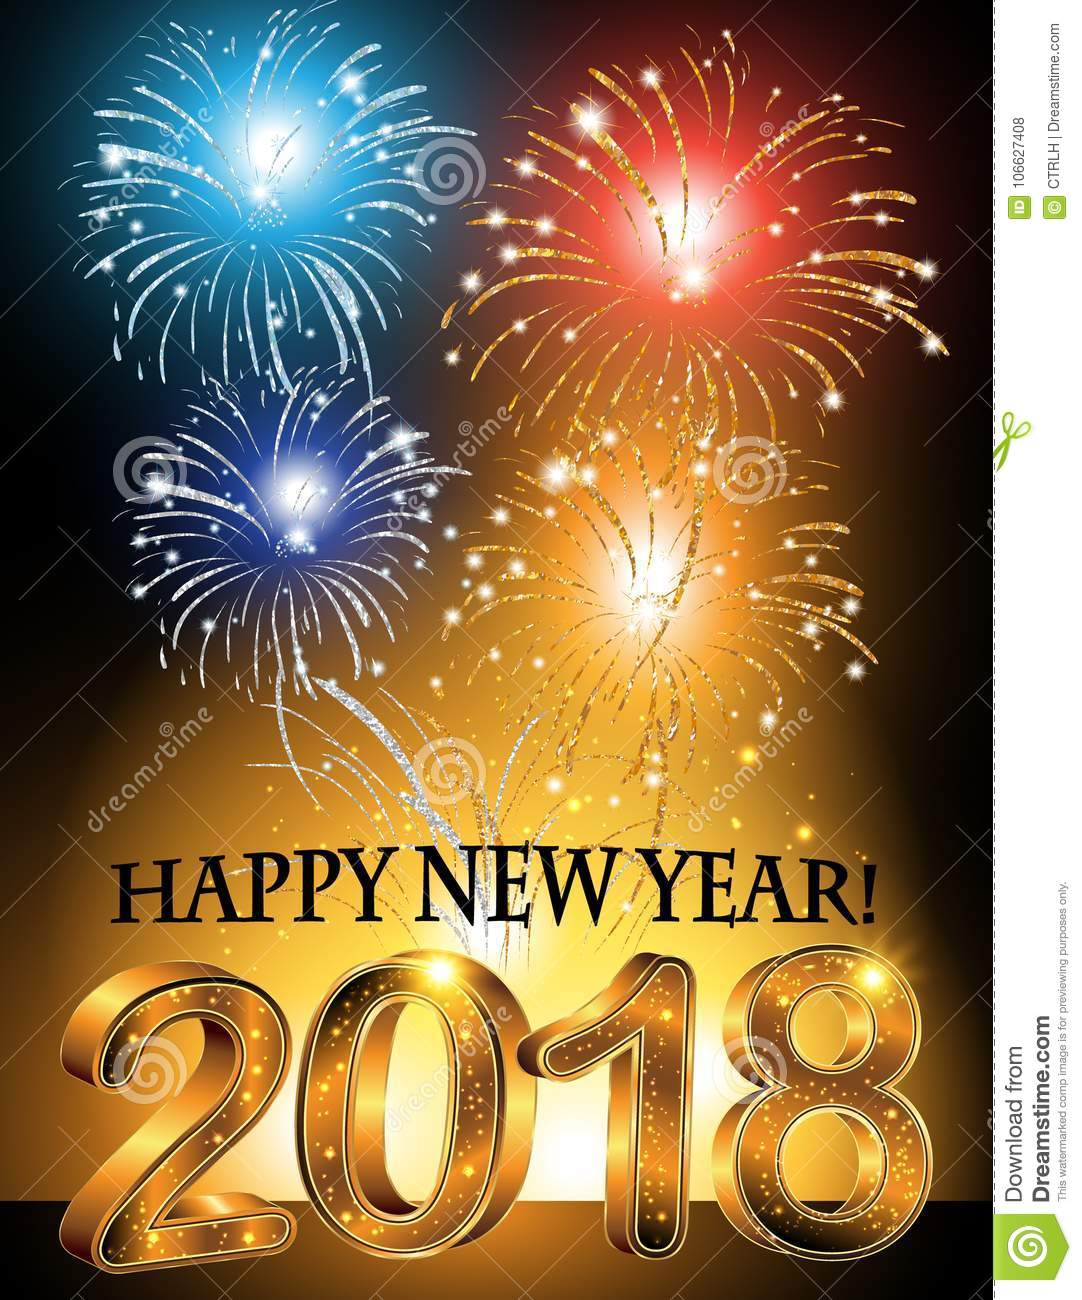 happy new year 2018 background corporate greeting card